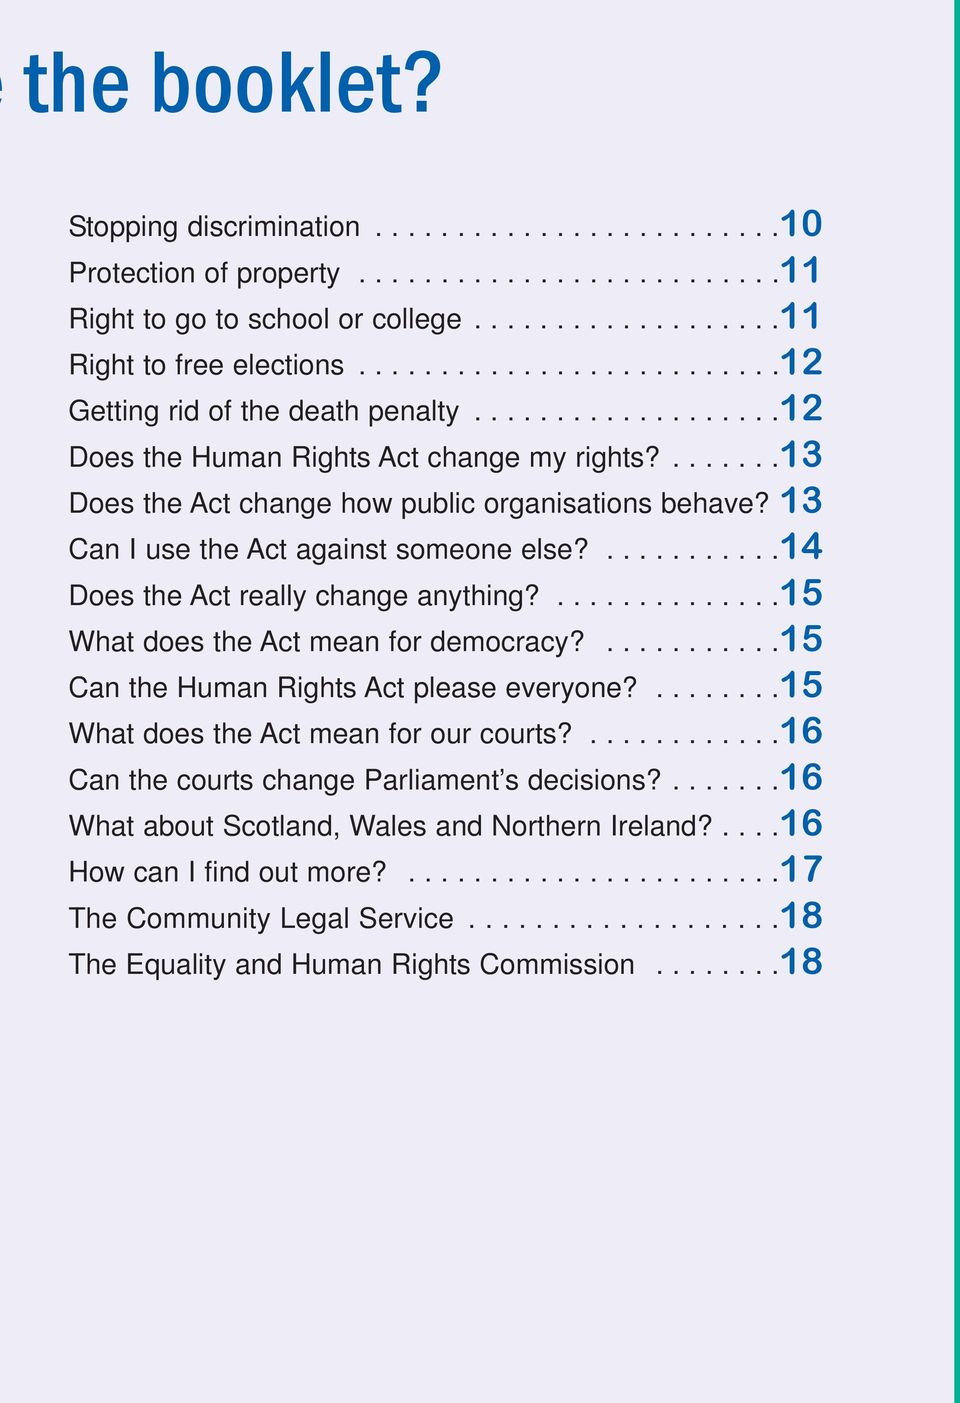 13 Can I use the Act against someone else?...........14 Does the Act really change anything?..............15 What does the Act mean for democracy?...........15 Can the Human Rights Act please everyone?